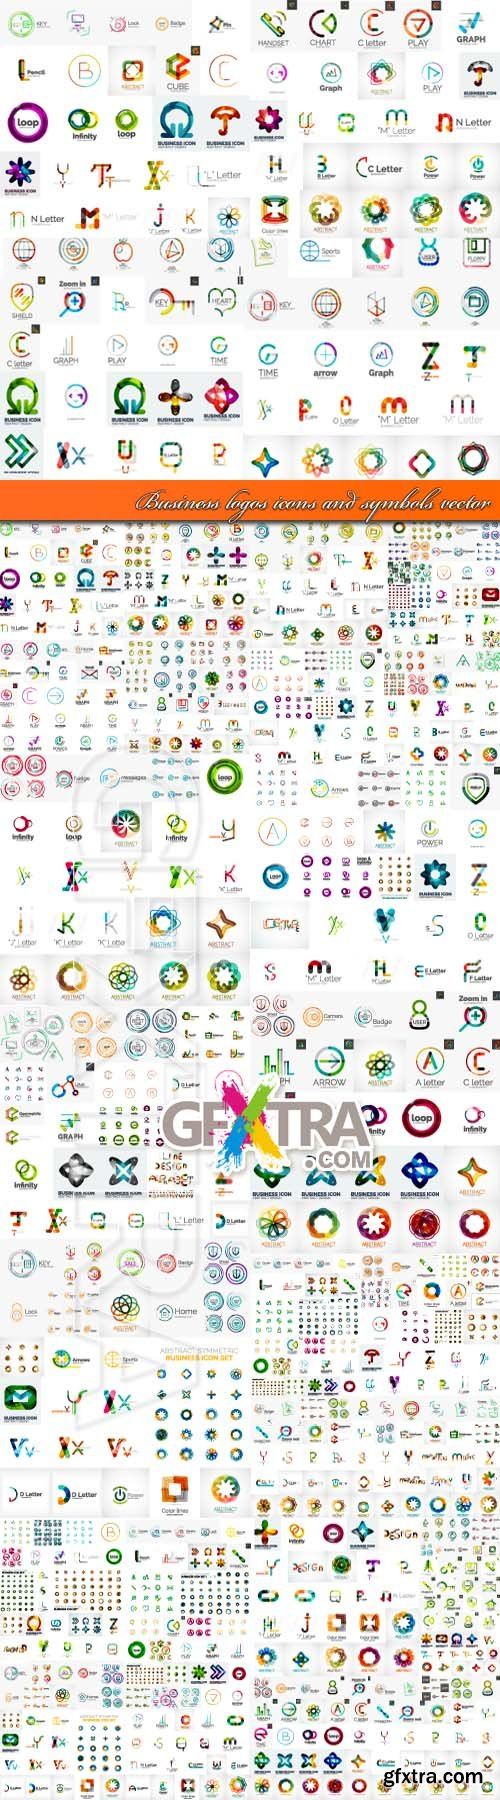 Business logos icons and symbols vector